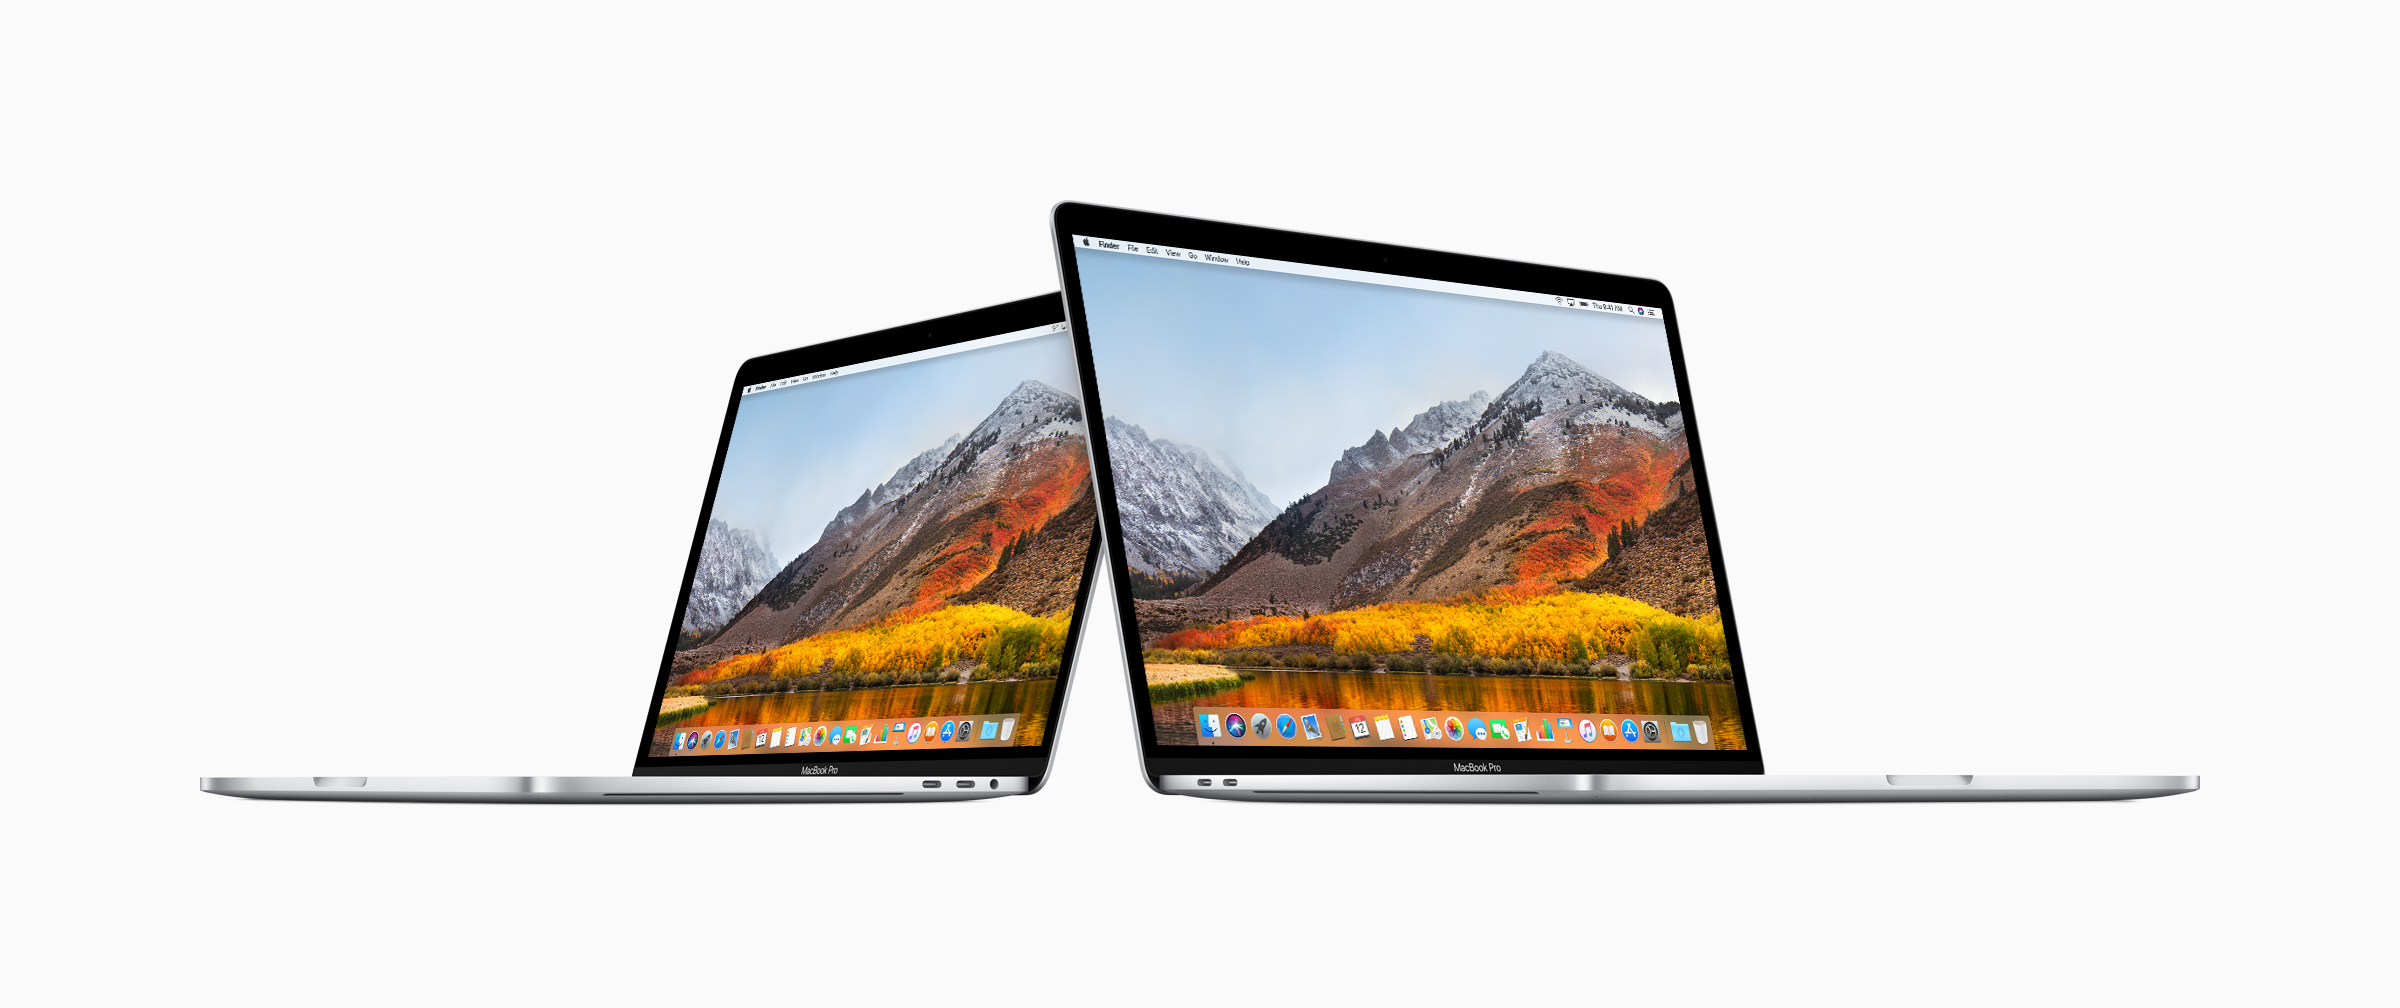 Apple Set to Release 16-Inch MacBook Pro in September: IHS